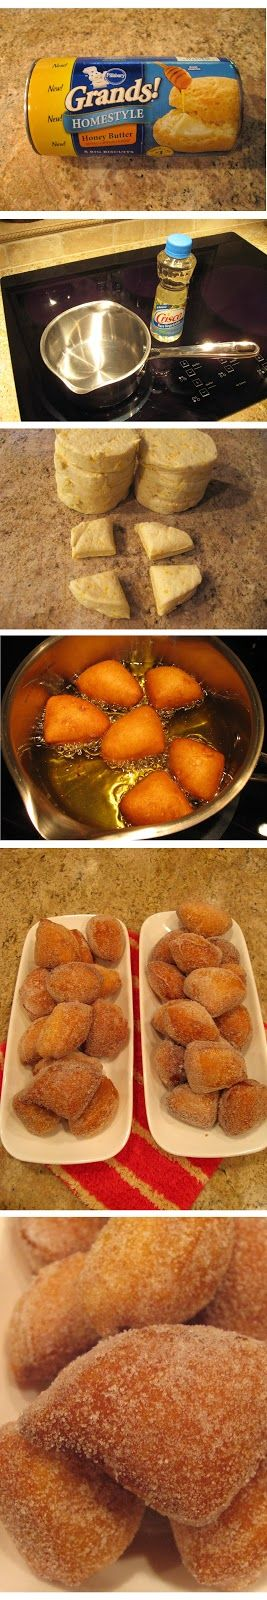 WAIT WHAT.  Easy Biscuit Doughnuts - Cut biscuits into quarters, drop in 200 - 240° oil for a couple of minutes (flip halfway), cool sightly on paper towel, roll in sugar, brown sugar, powdered sugar, ENJOY